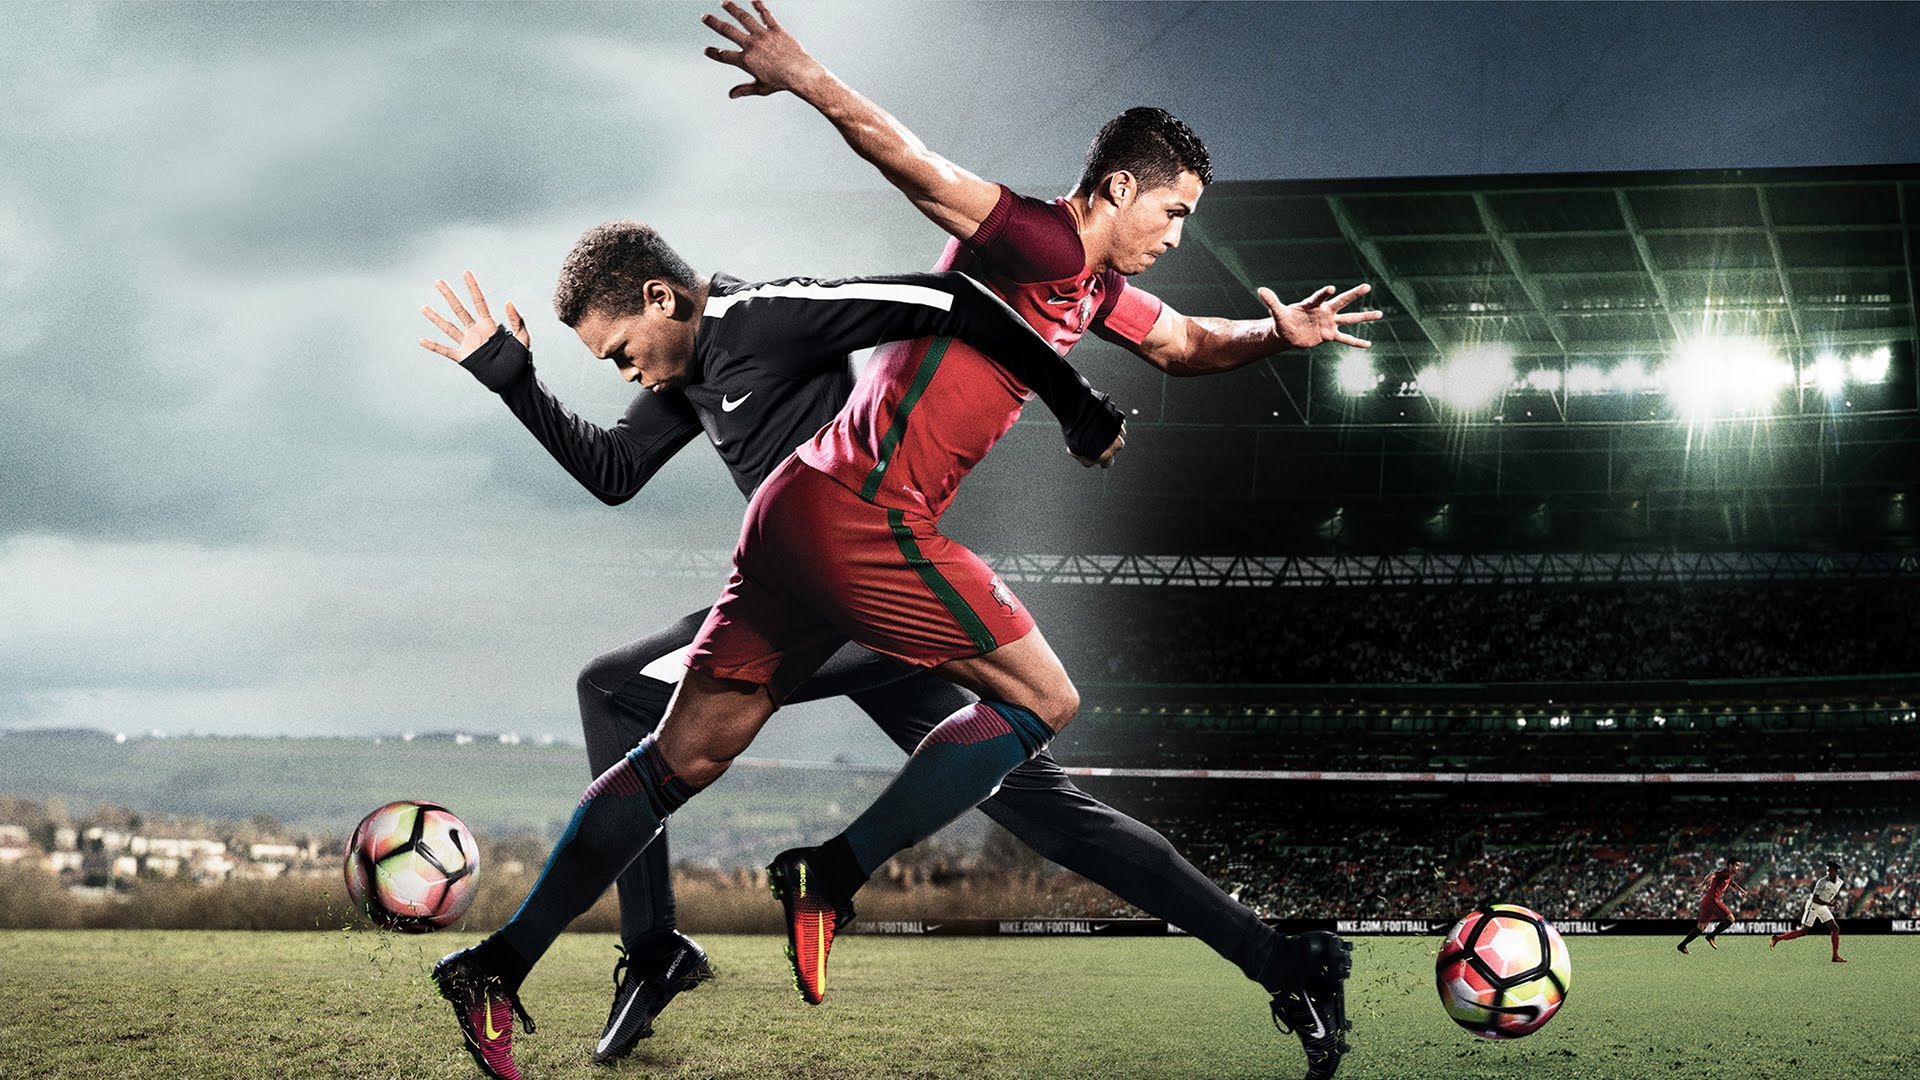 WATCH: Nike Football's Newest Advert 'The Switch' Is Finally Here